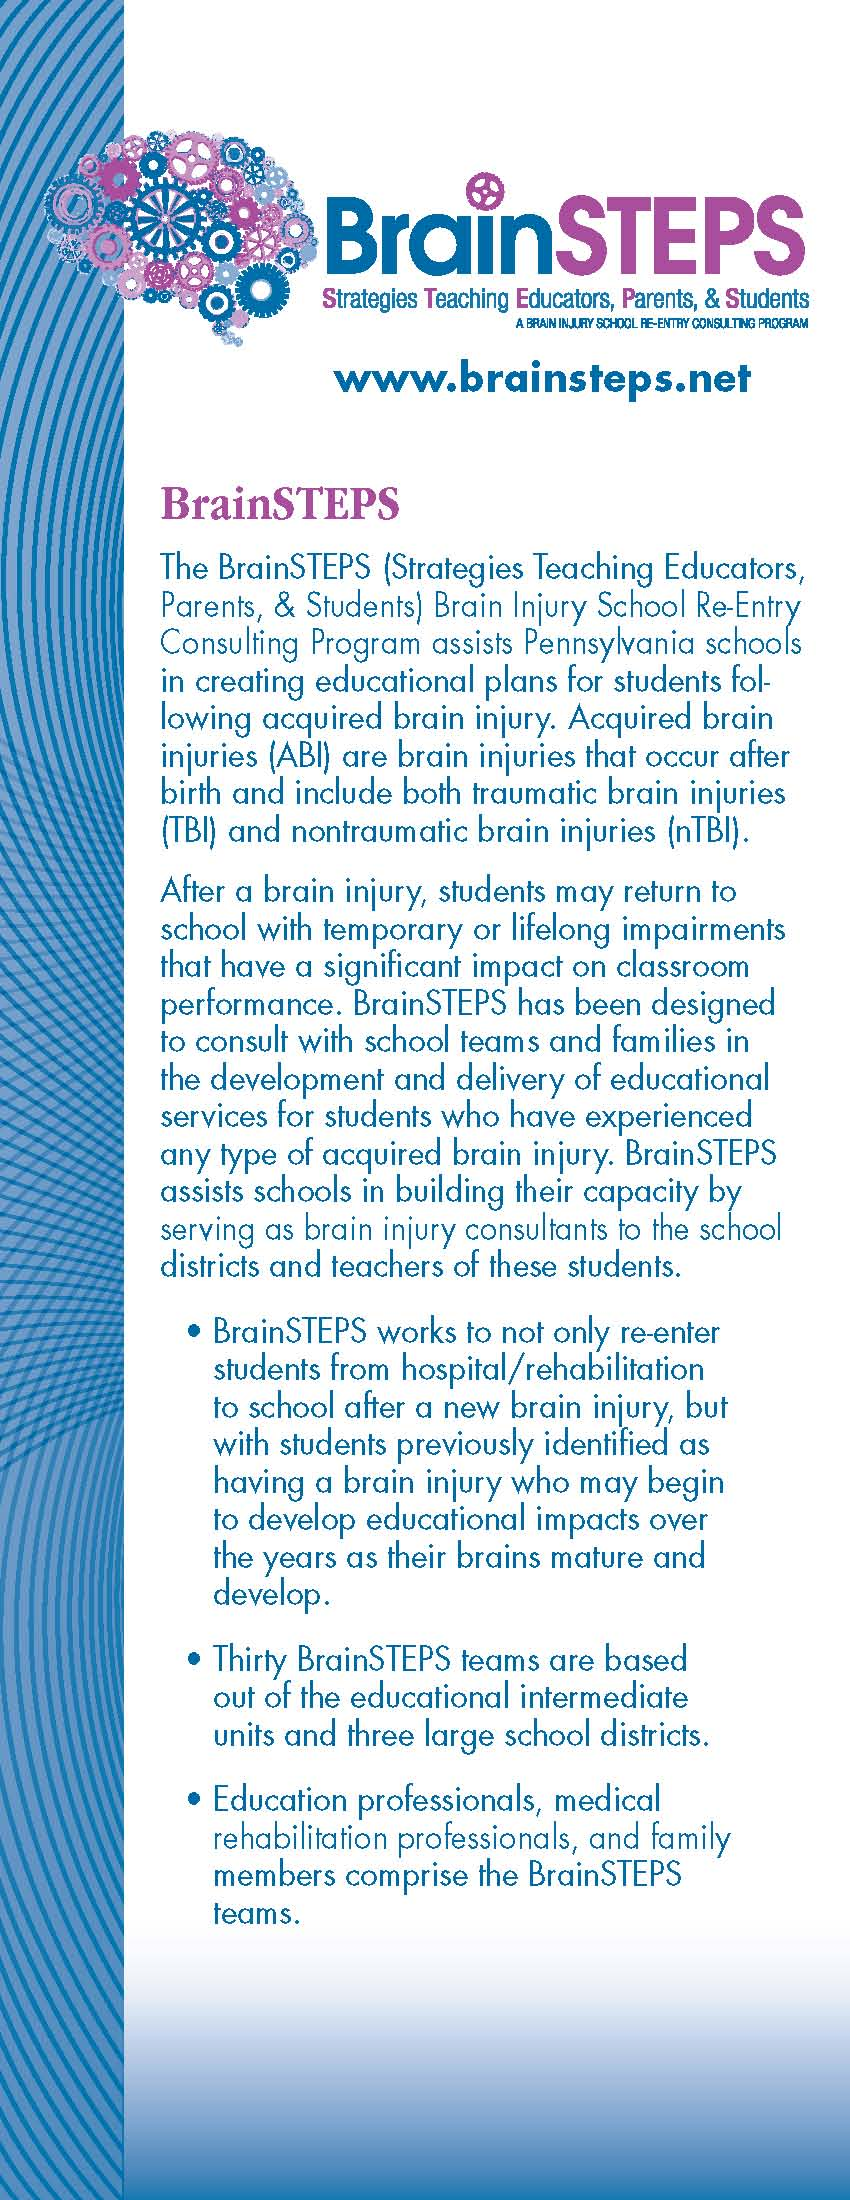 BrainSTEPS Brochure (Strategies Teaching Educators, Parents, and Students)